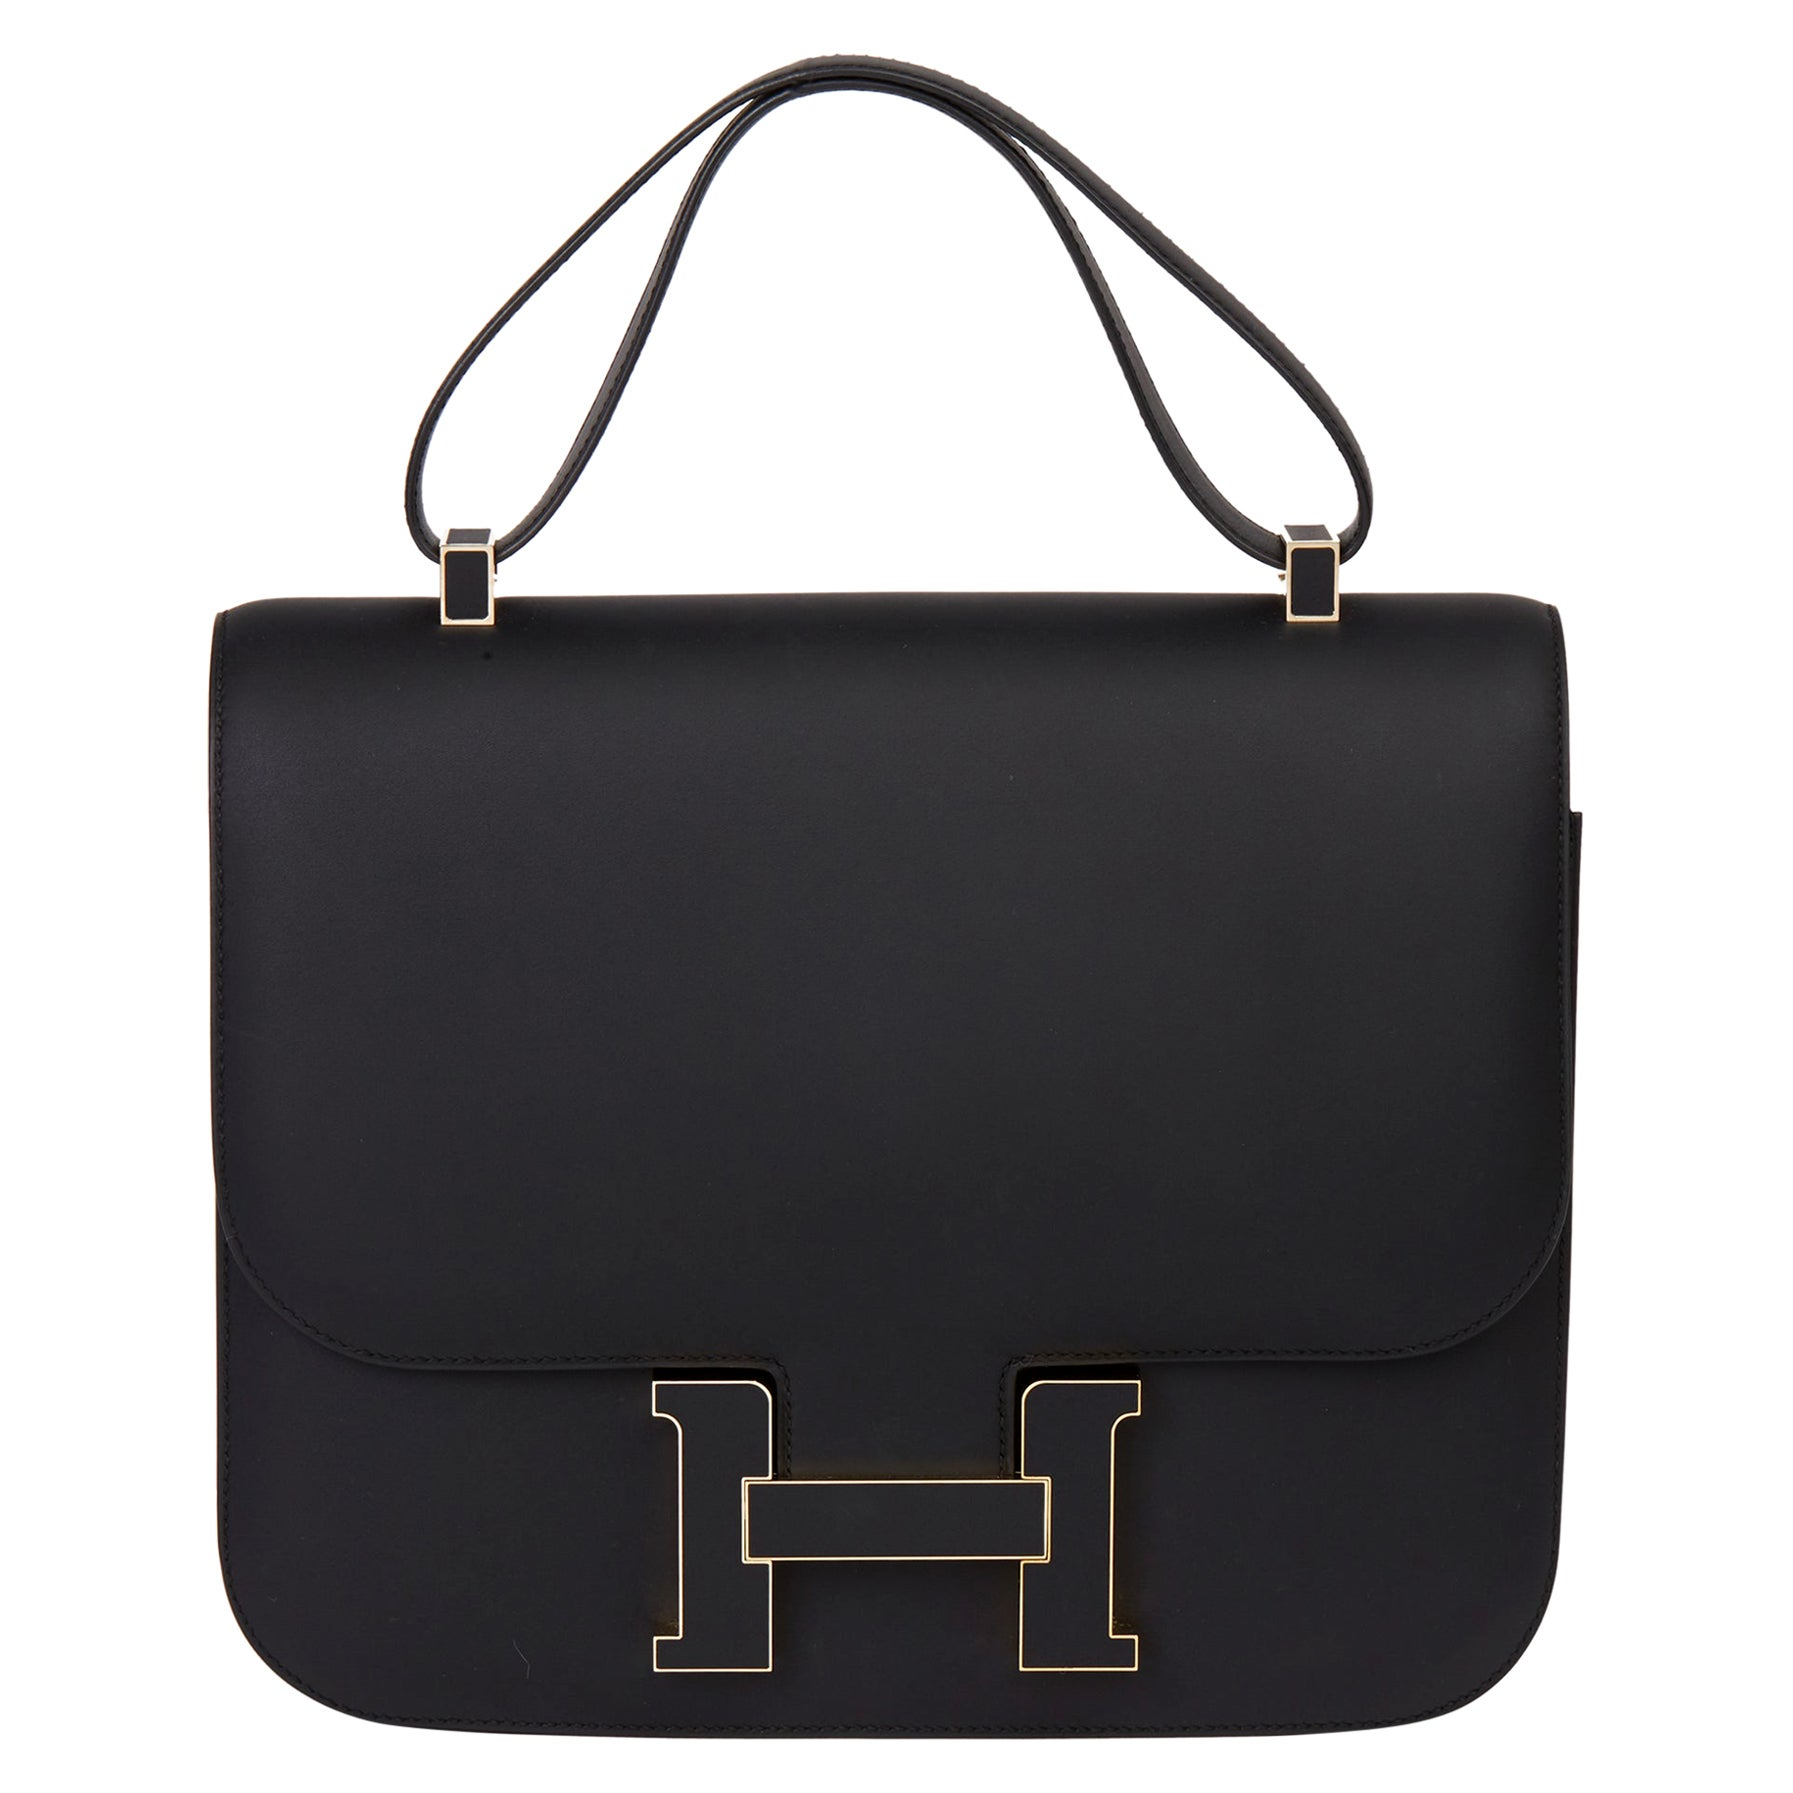 2019 Hermès Black Sombrero Leather Constance Cartable